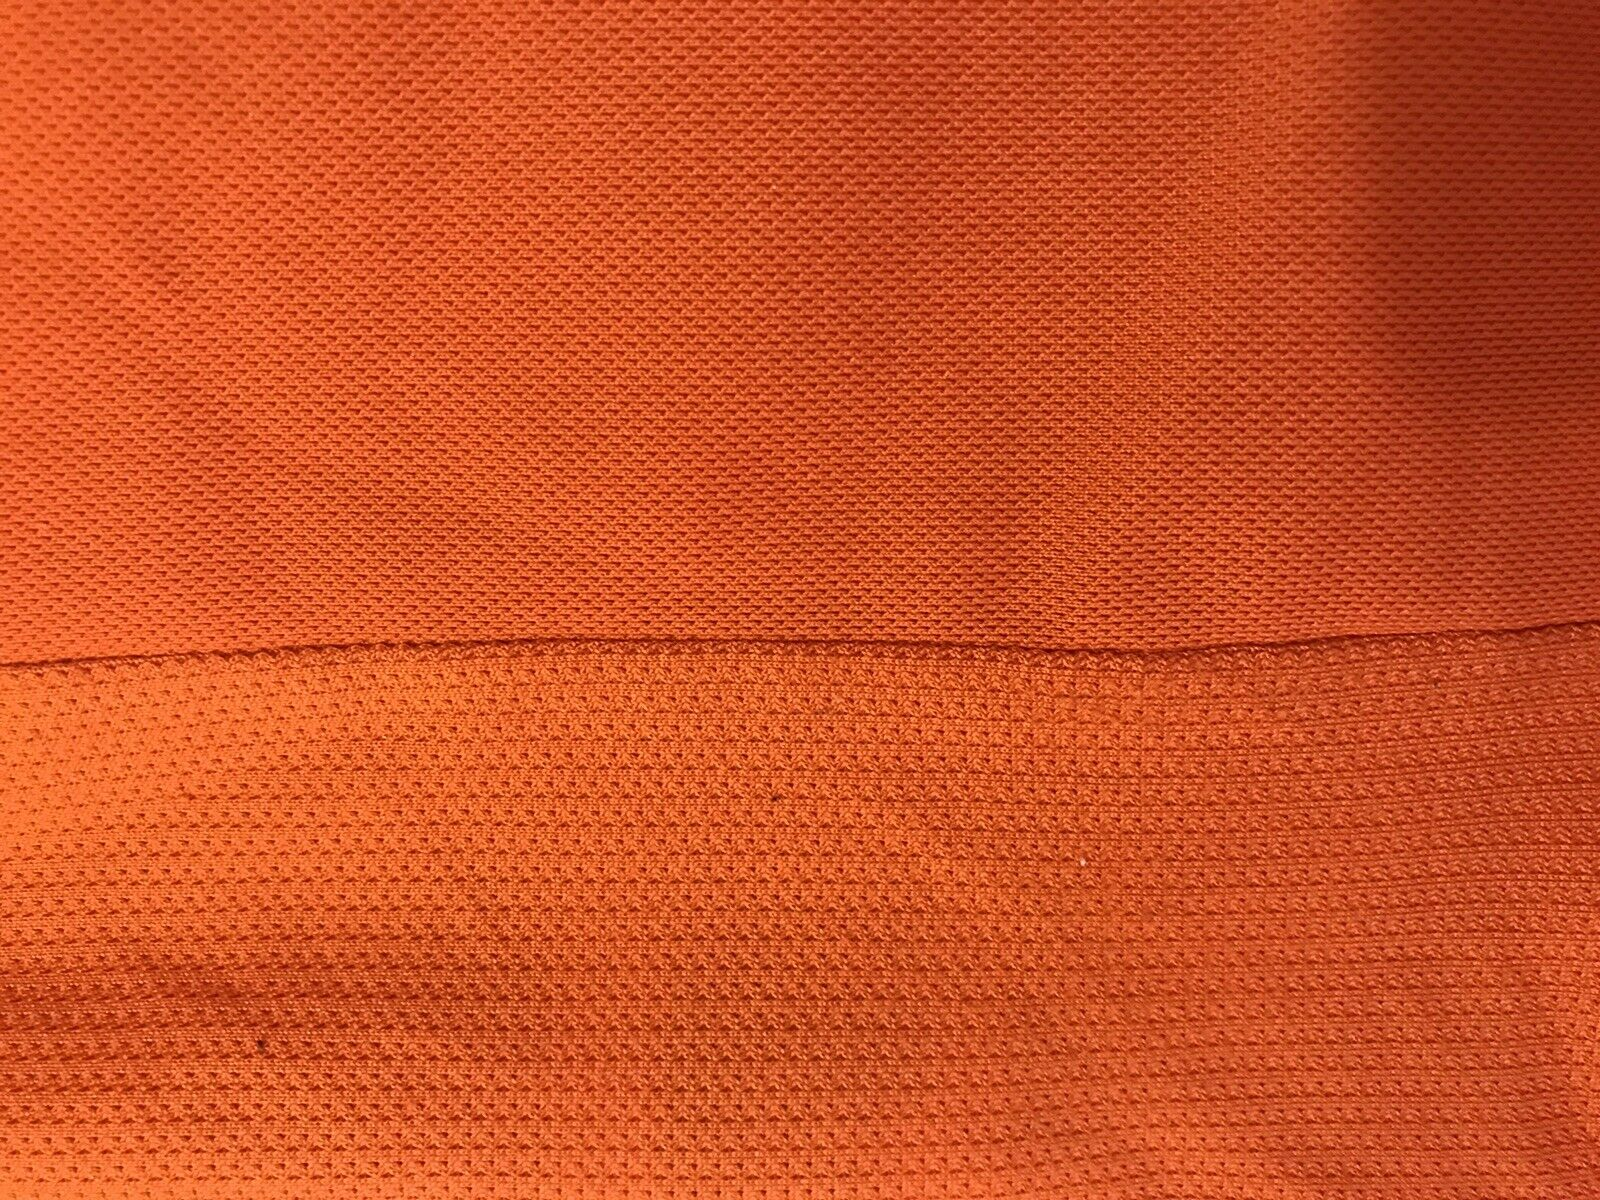 Netherlands 1997/1998 Home Size XL  jersey Nike